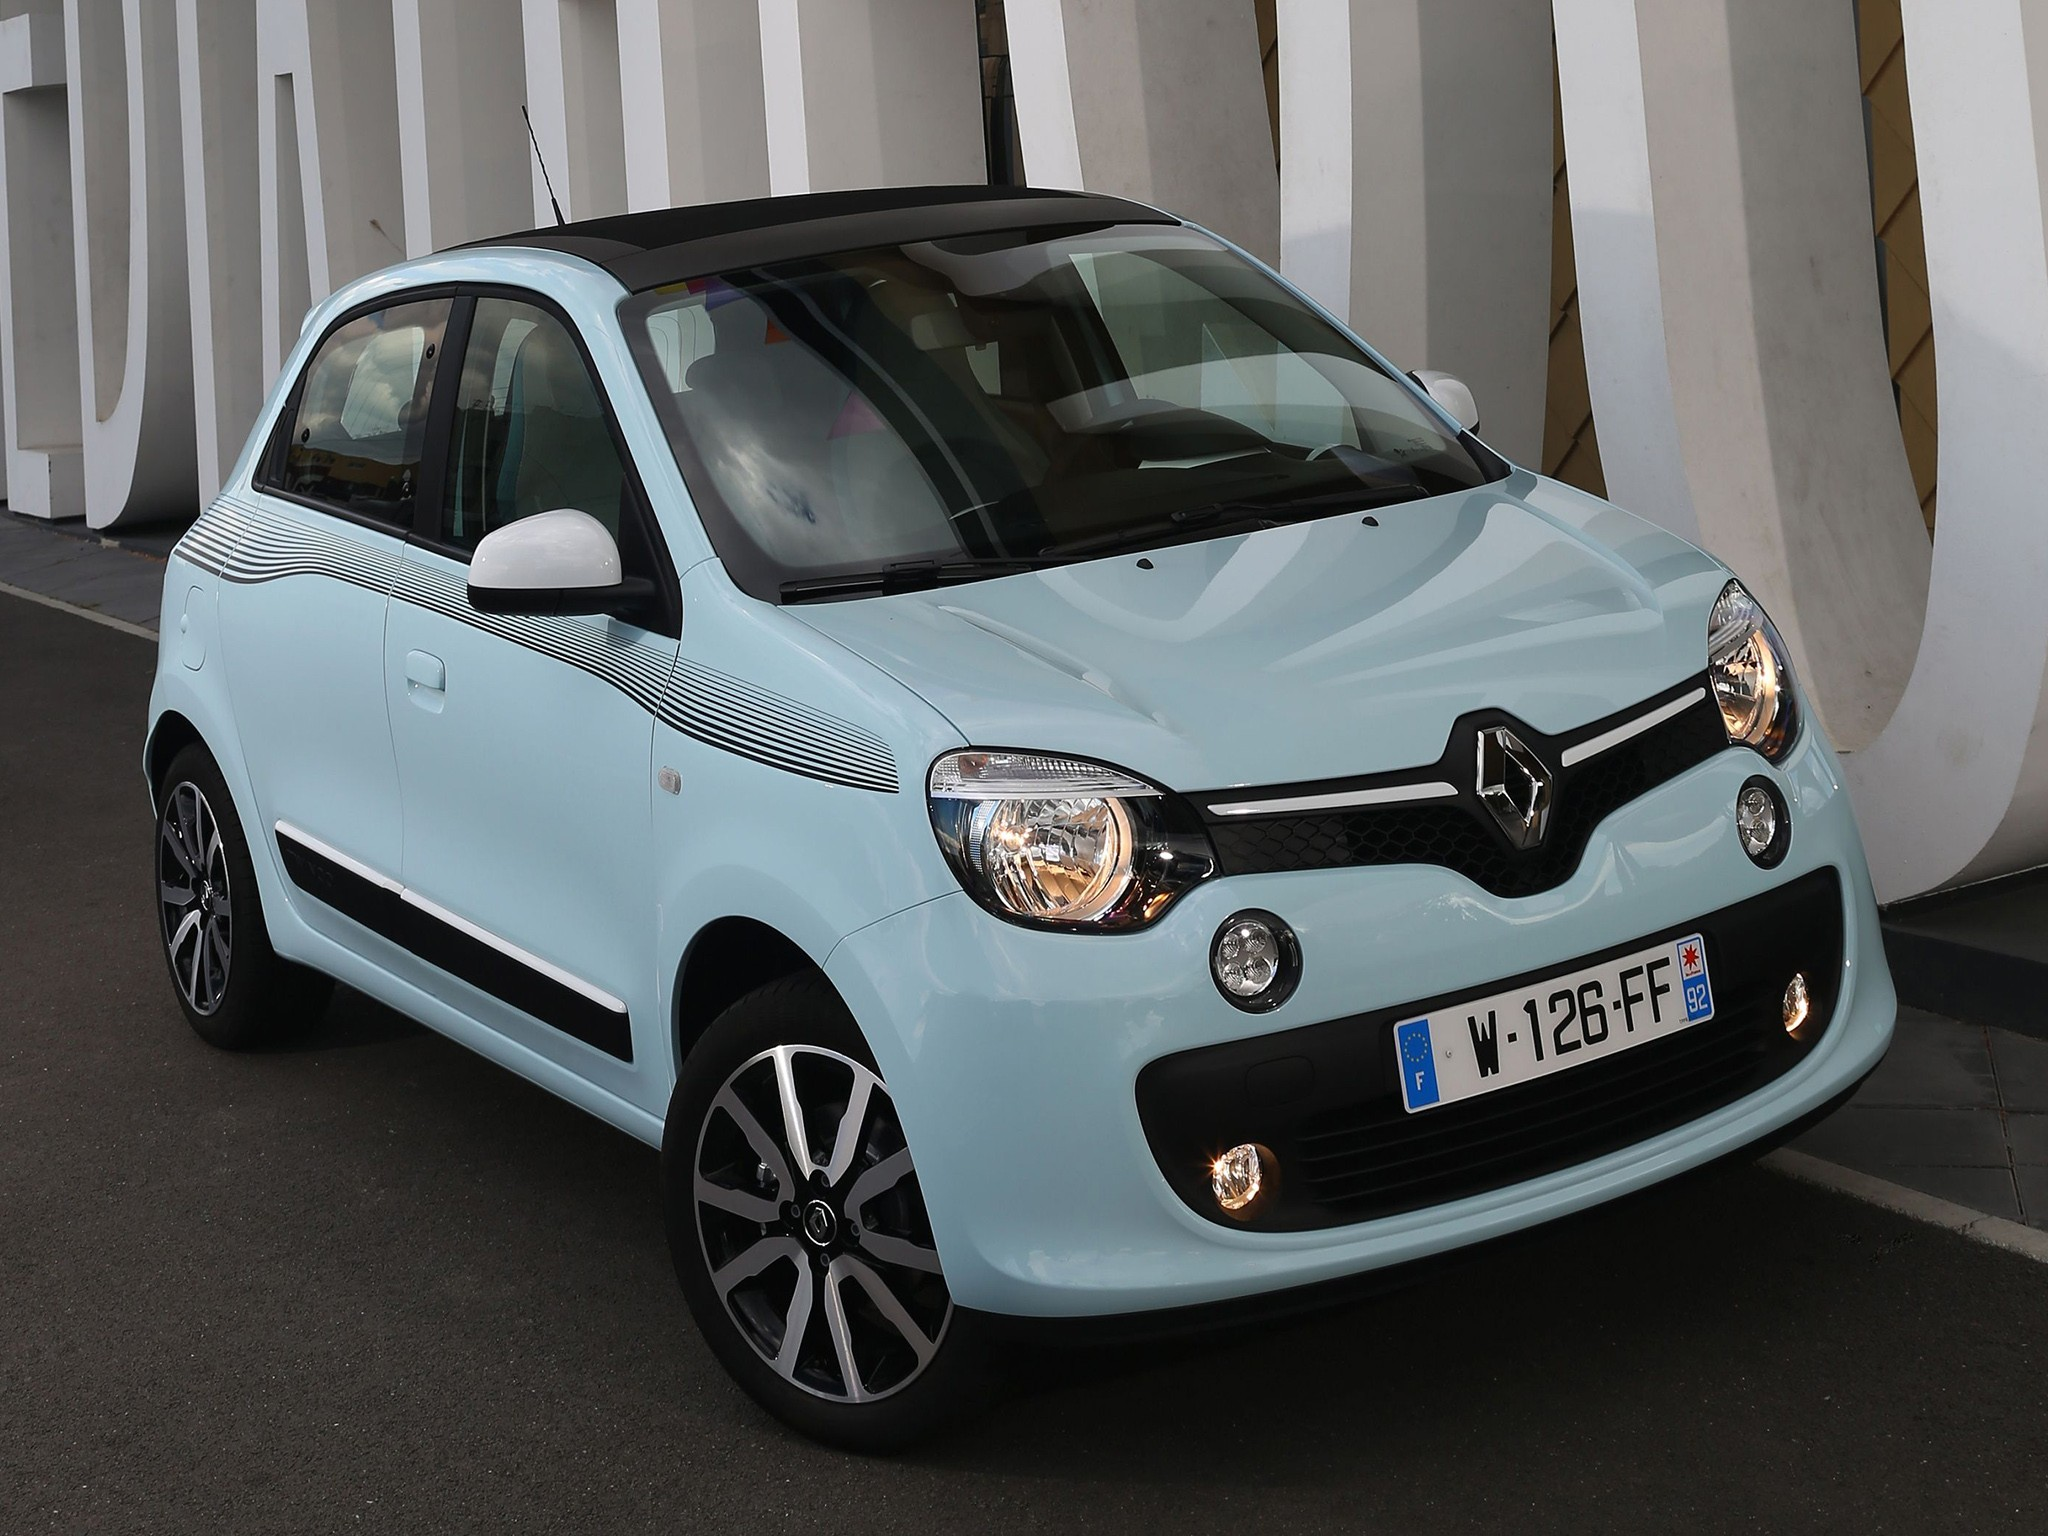 renault twingo specs 2014 2015 2016 2017 2018 autoevolution. Black Bedroom Furniture Sets. Home Design Ideas